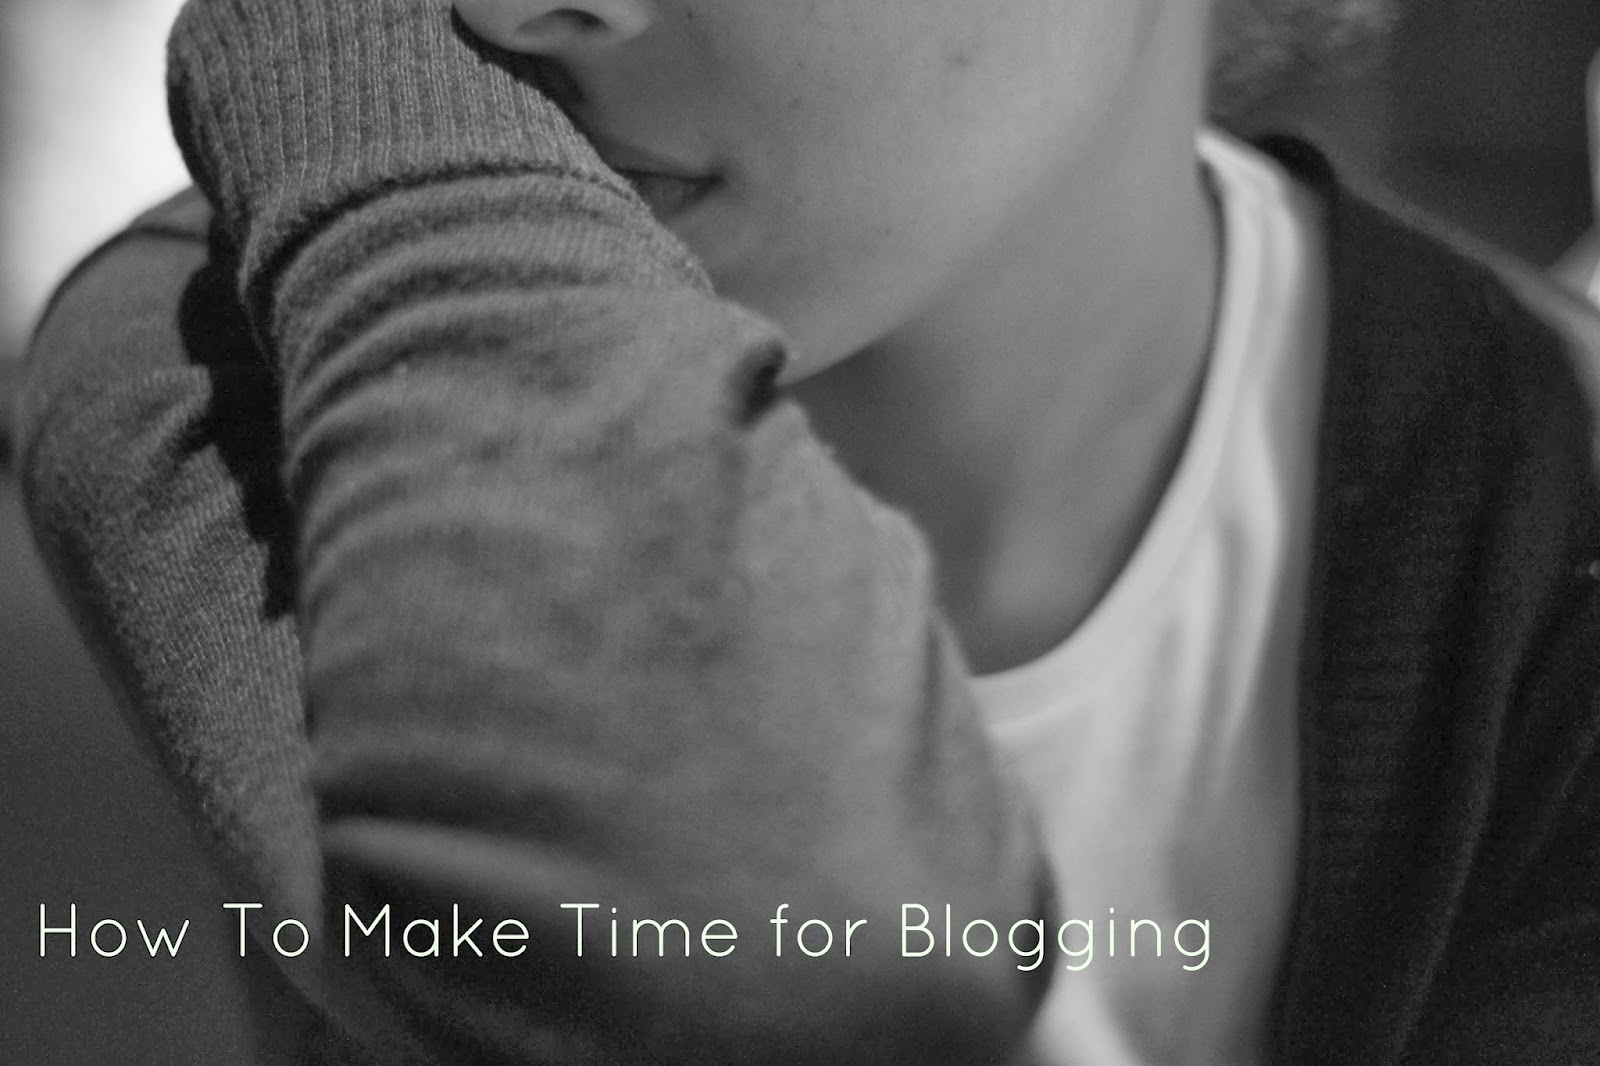 How To Make Time For Blogging